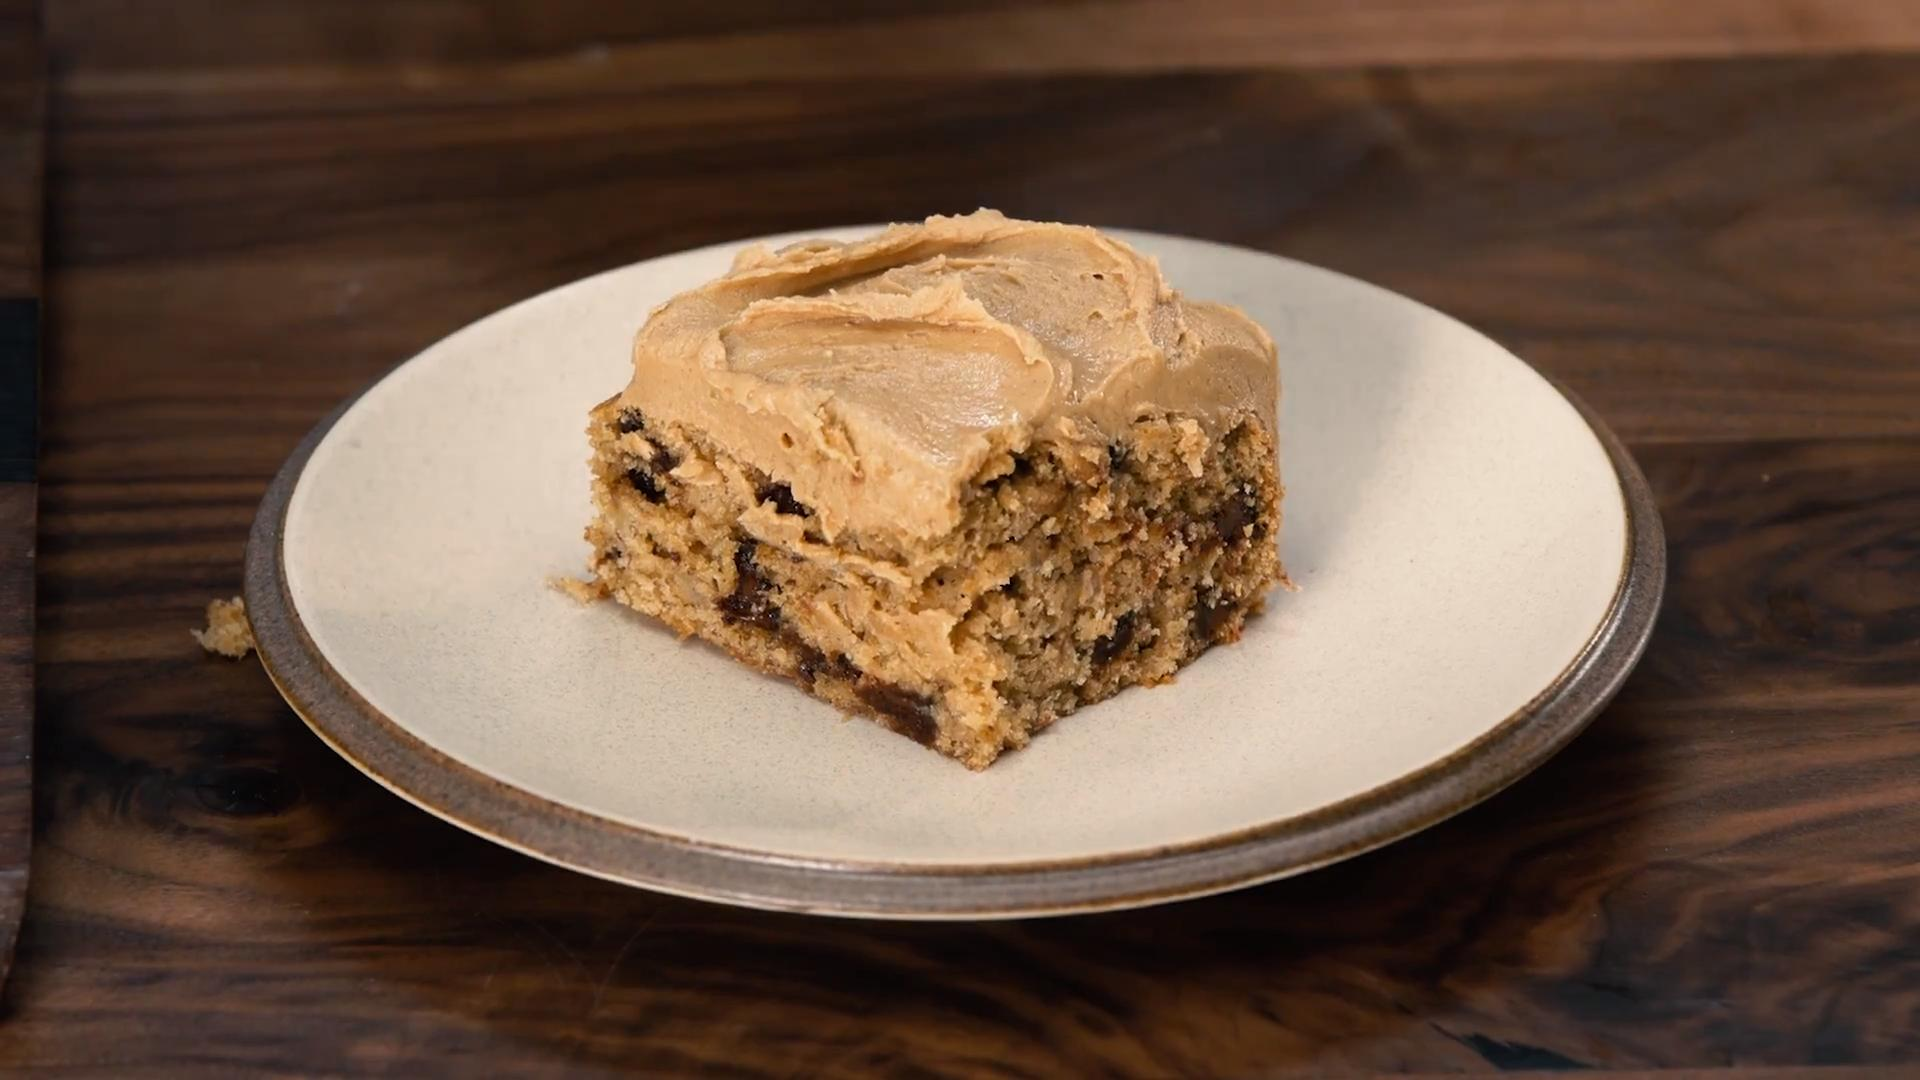 Banana–Chocolate Chip Snack Cake with Salted Peanut Butter Frosting